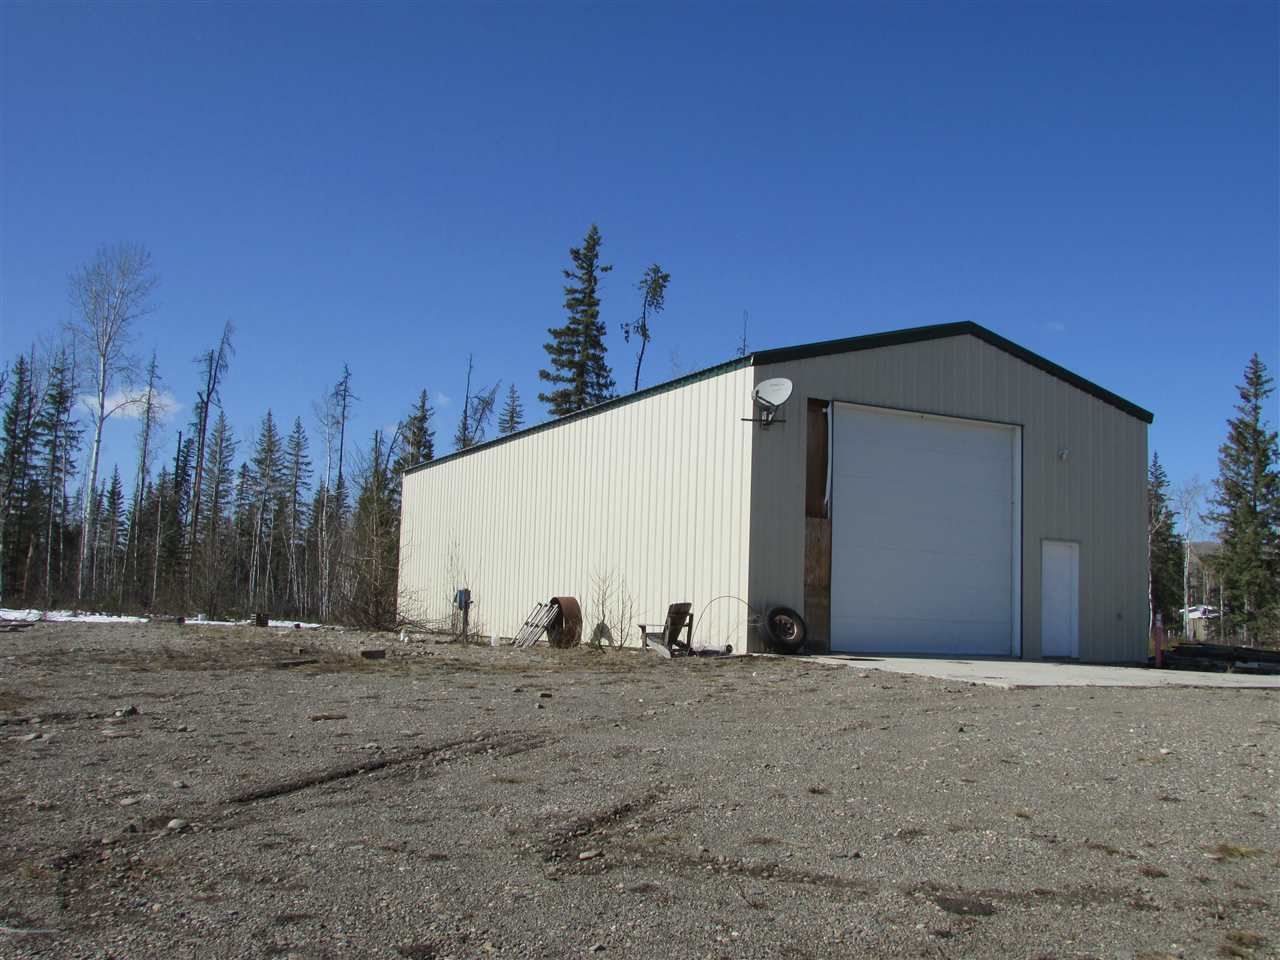 """Main Photo: 19587 LESAGE Road: Hudsons Hope Manufactured Home for sale in """"Lynx Creek Subdivision"""" (Fort St. John (Zone 60))  : MLS®# R2353928"""